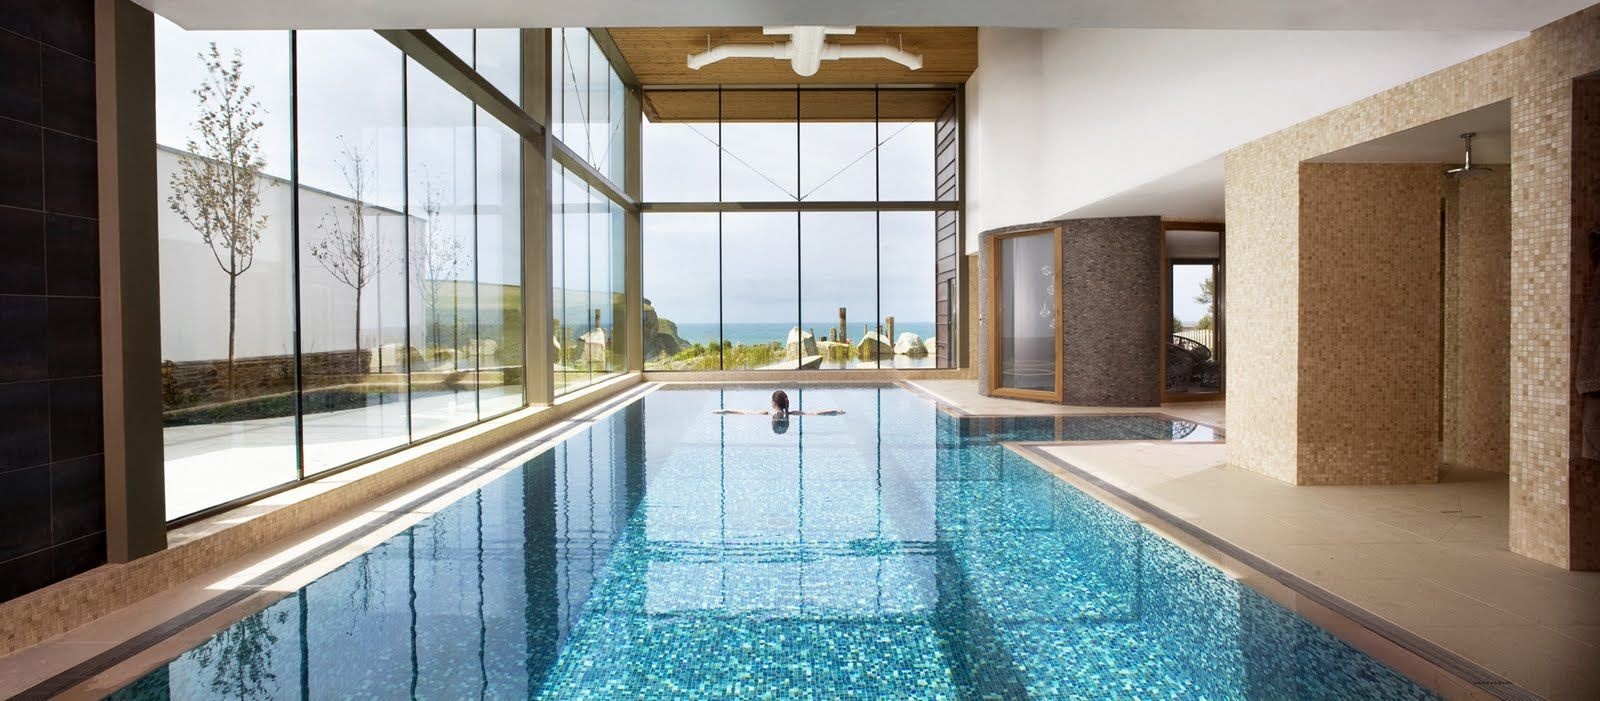 Cool Indoor Swimming Pools mesmerizing lengthwise indoor pool with cool blue-white mosaic